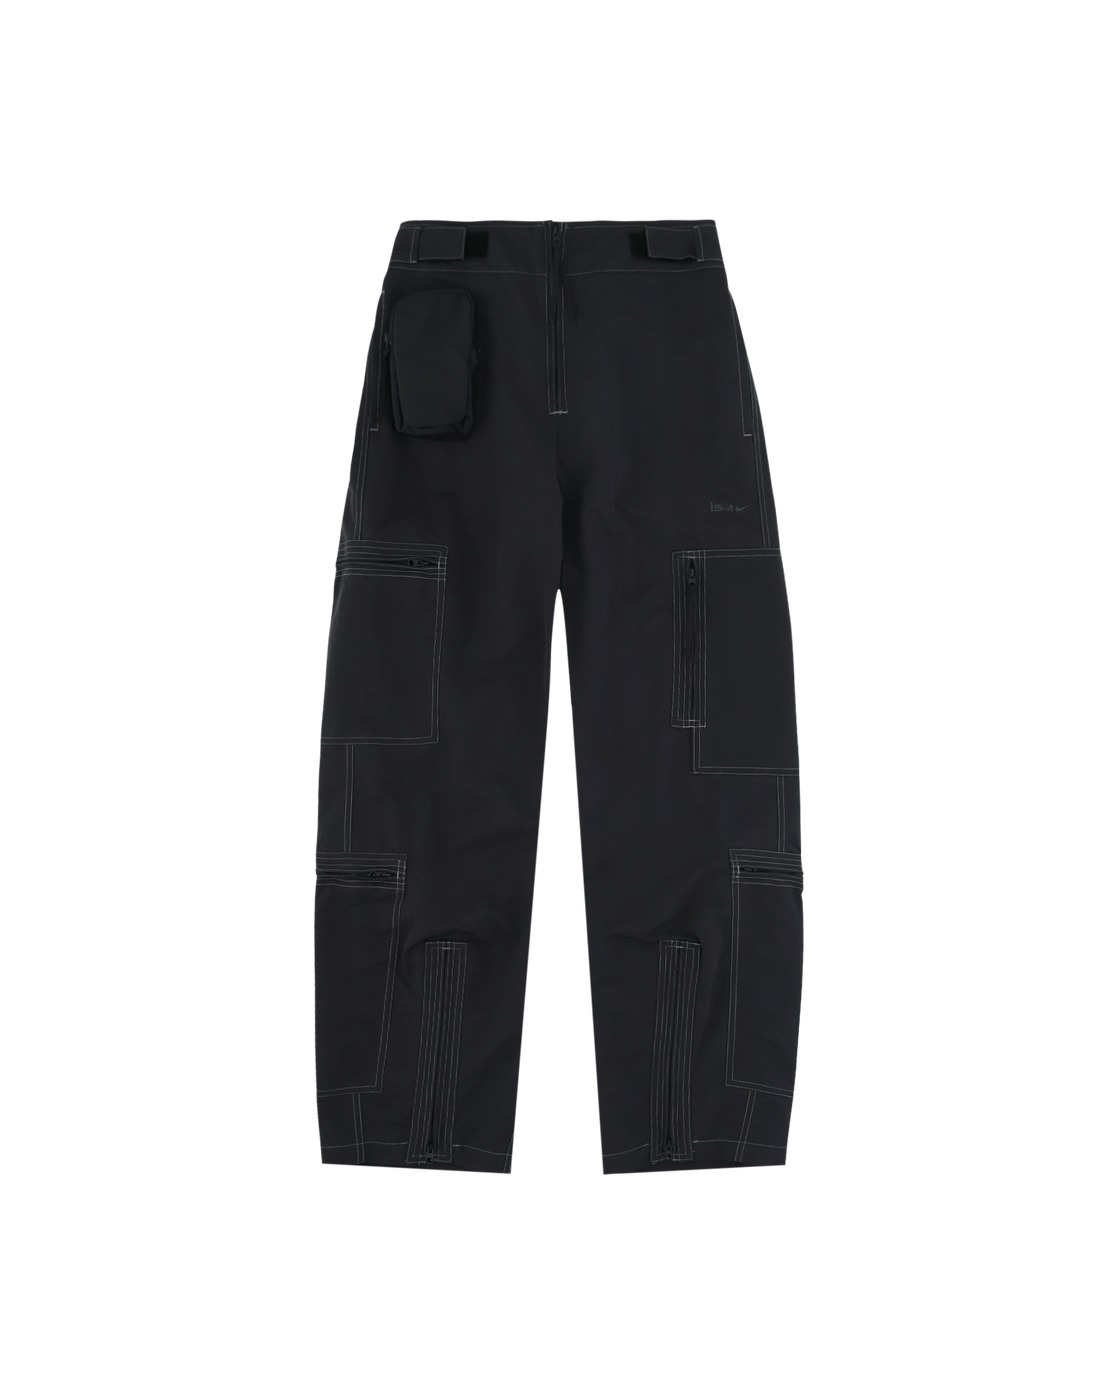 Photo: Nike Special Project Ispa Pants Black